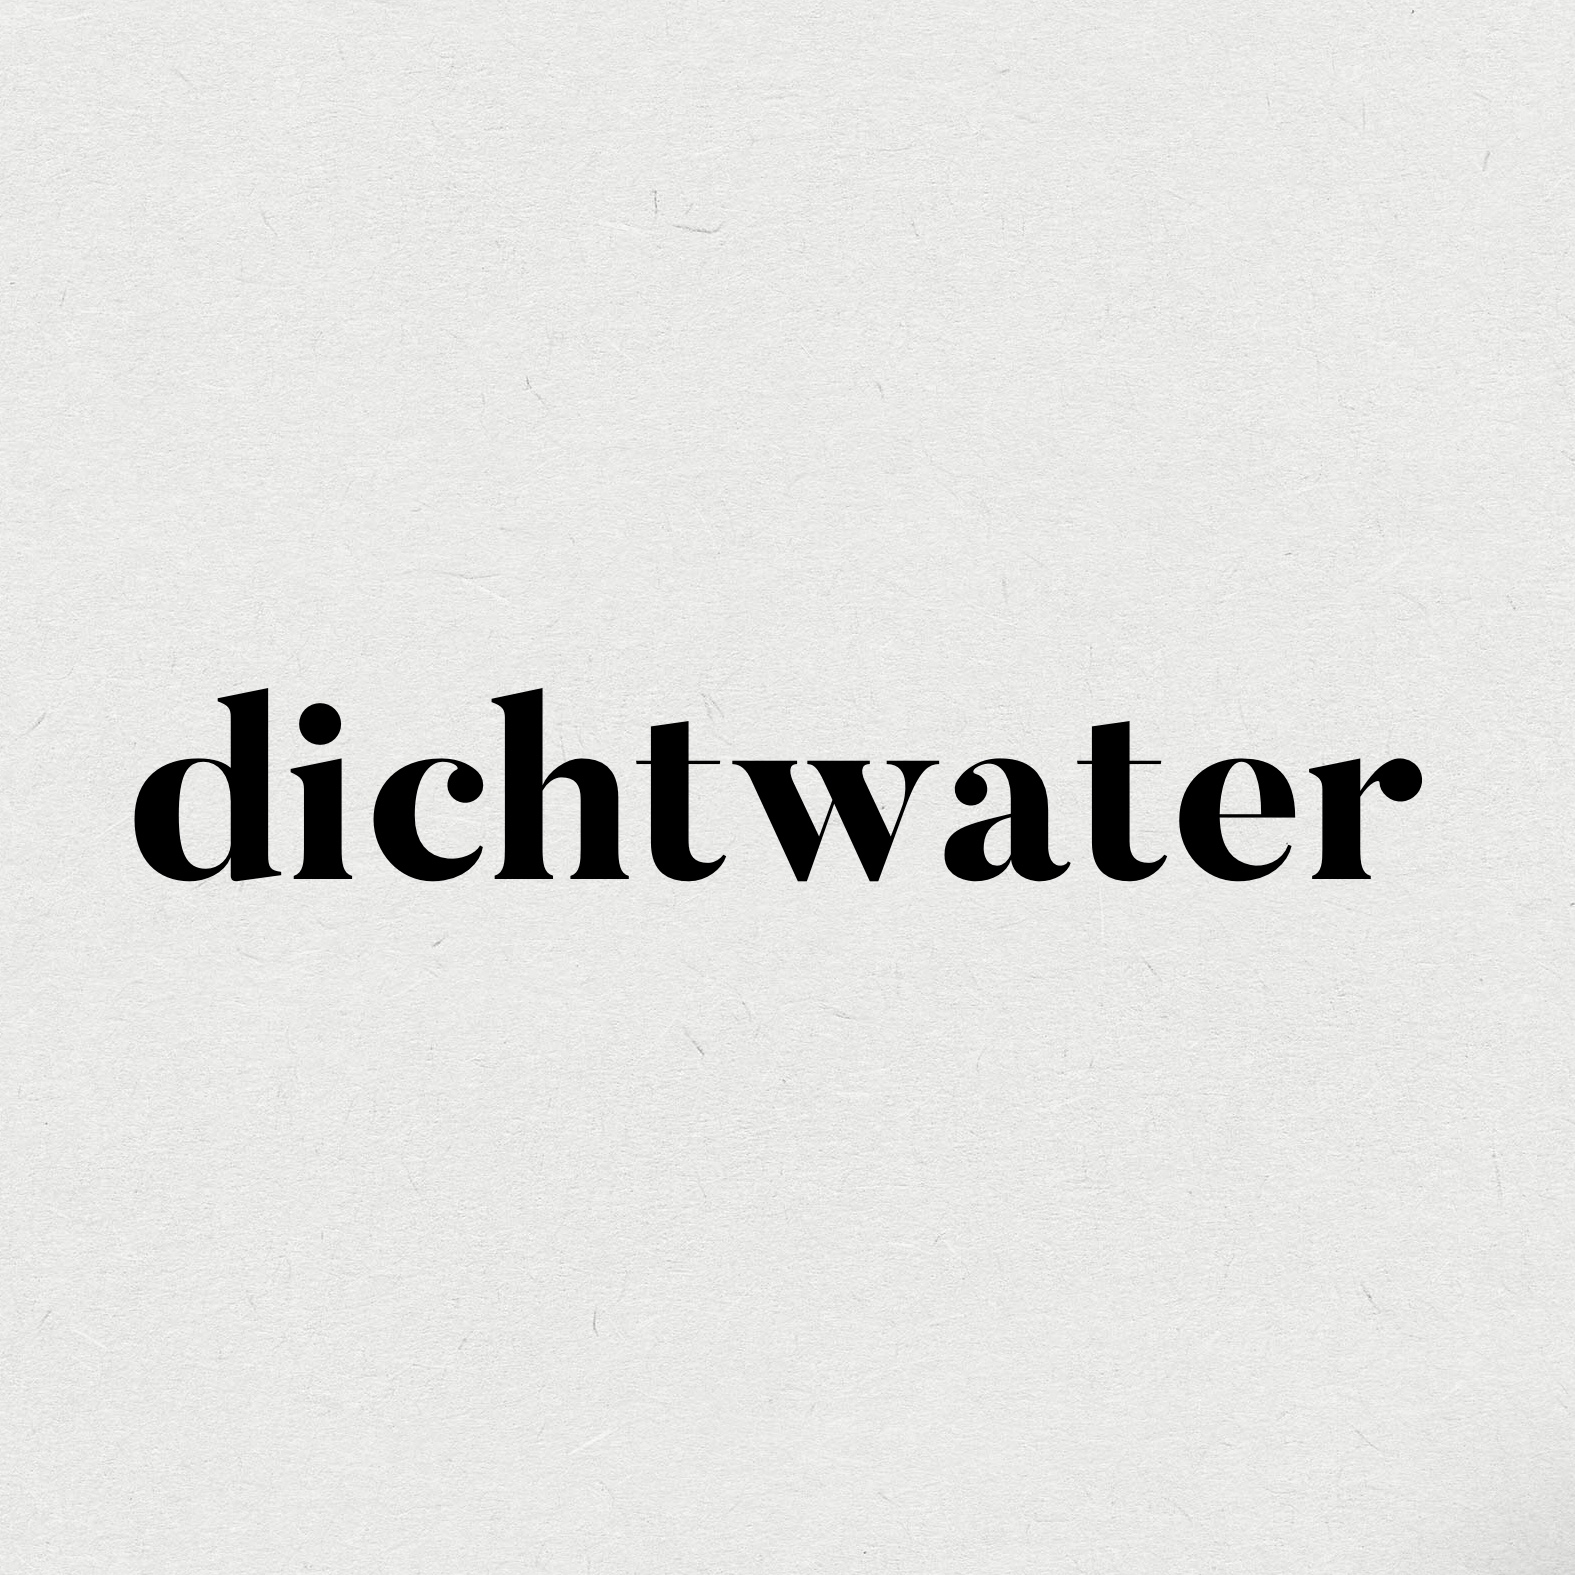 dichtwater